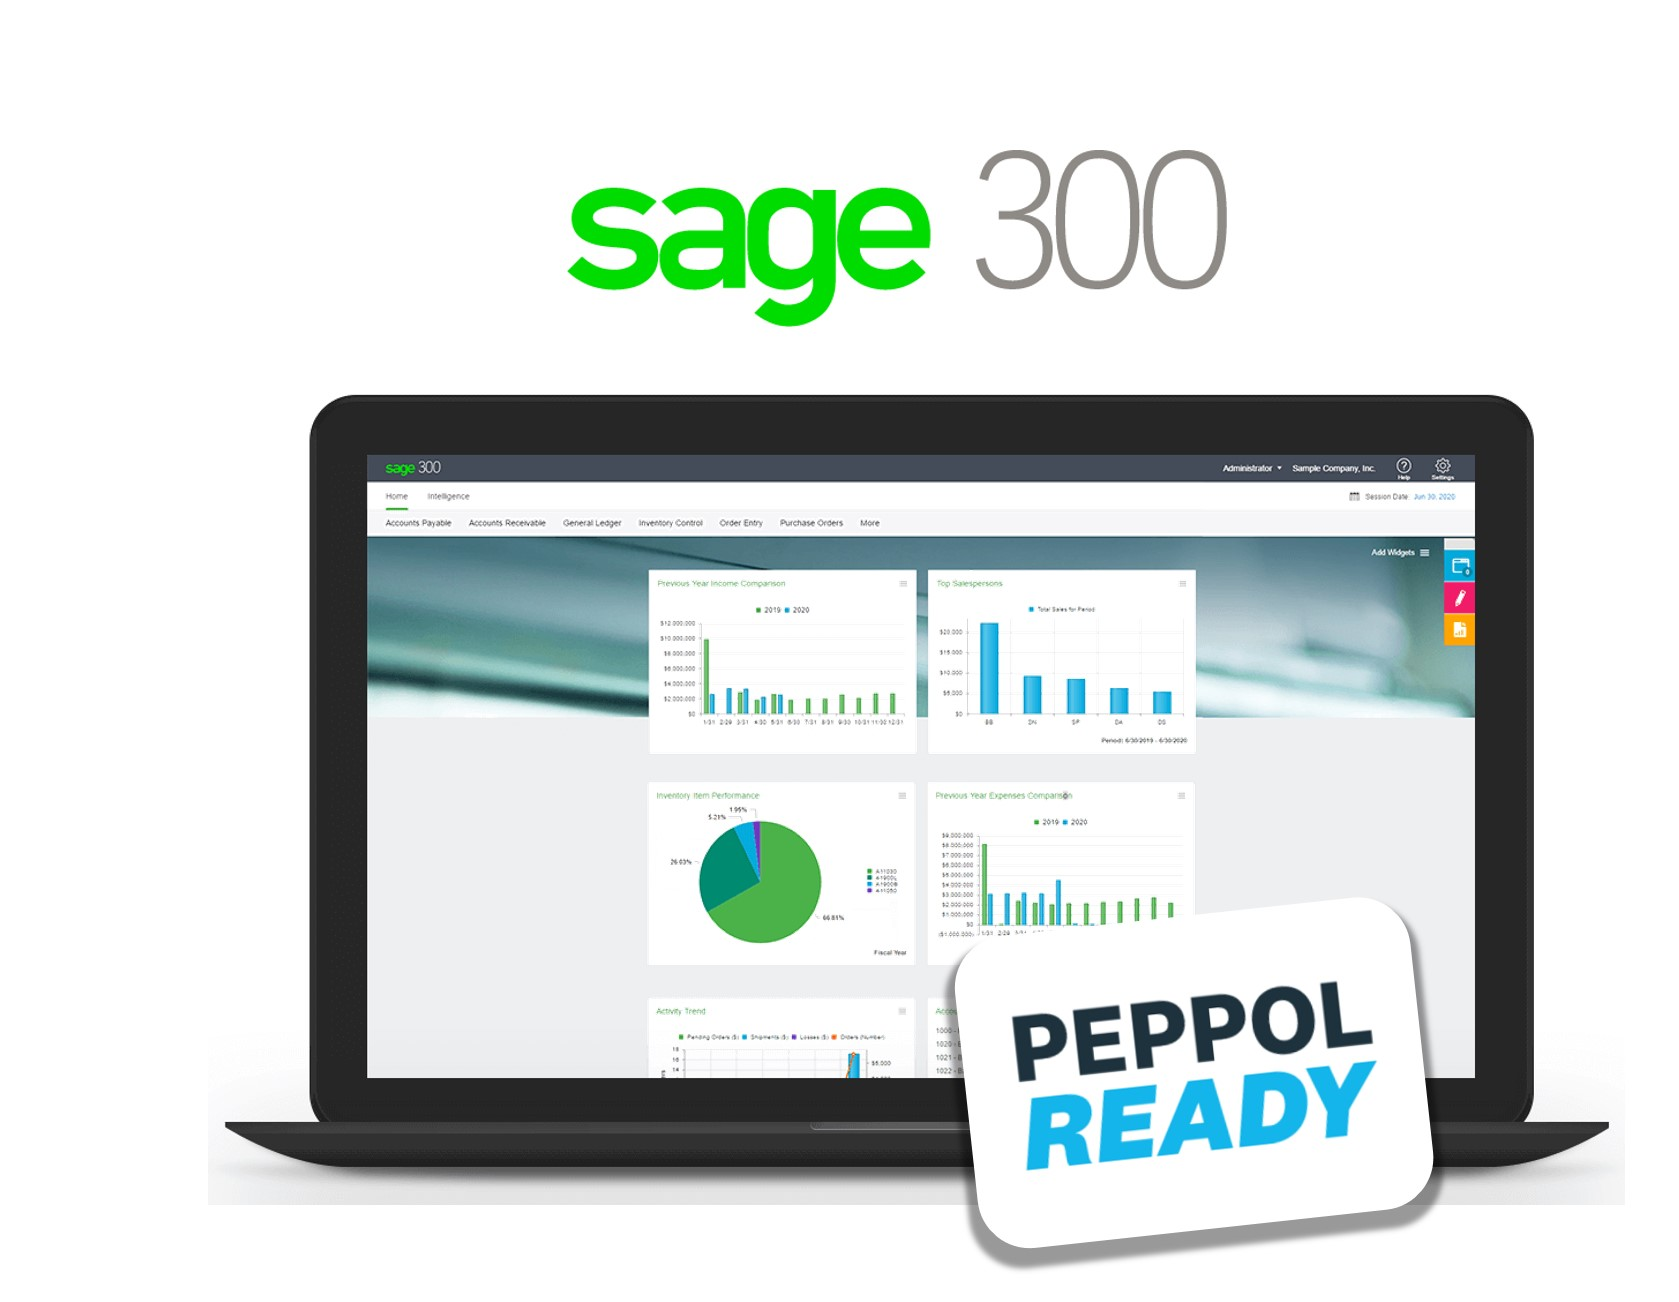 Sage 300_web interface